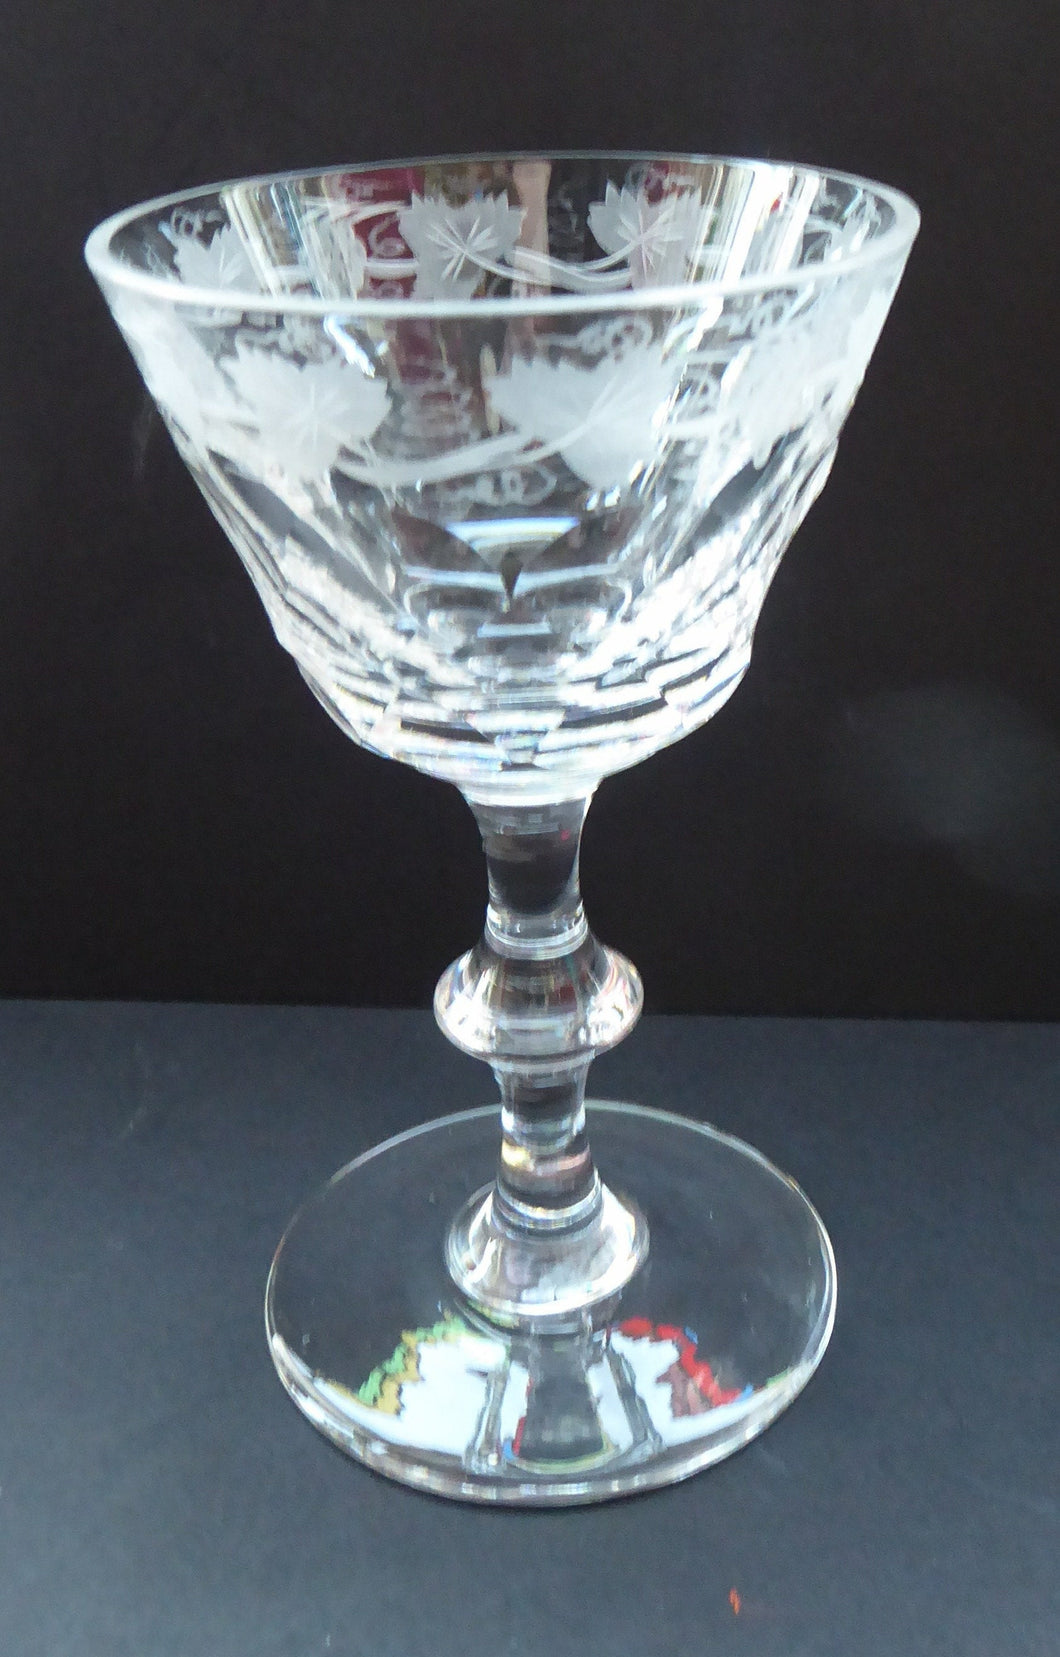 EDINBURGH CRYSTAL Vintage LOCHNAGAR Pattern Sherbet Glass or Cocktail Glass with Engraved Grapes and Vines Decoration. 5 1/8 inches